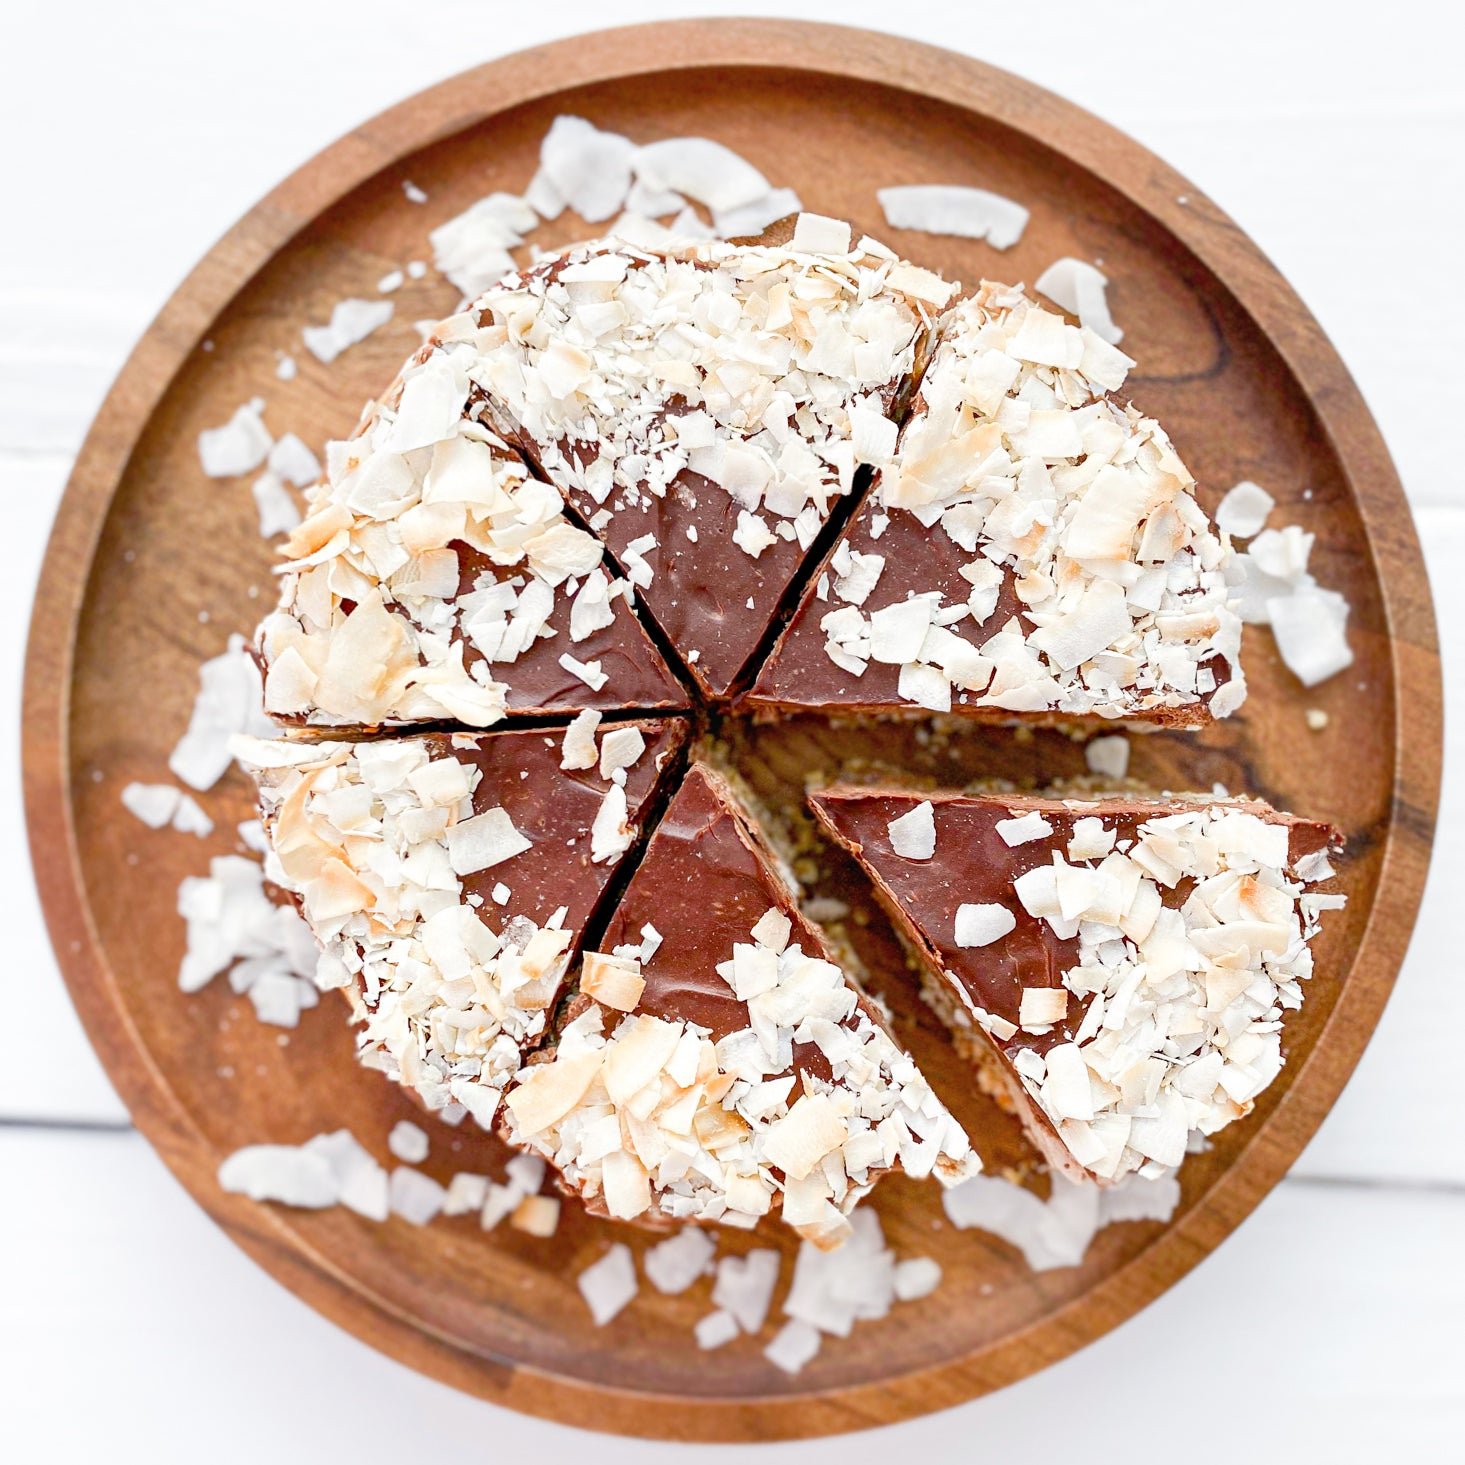 Good-For-You Raw Pies | Delivered w/ Signature Meal Plan